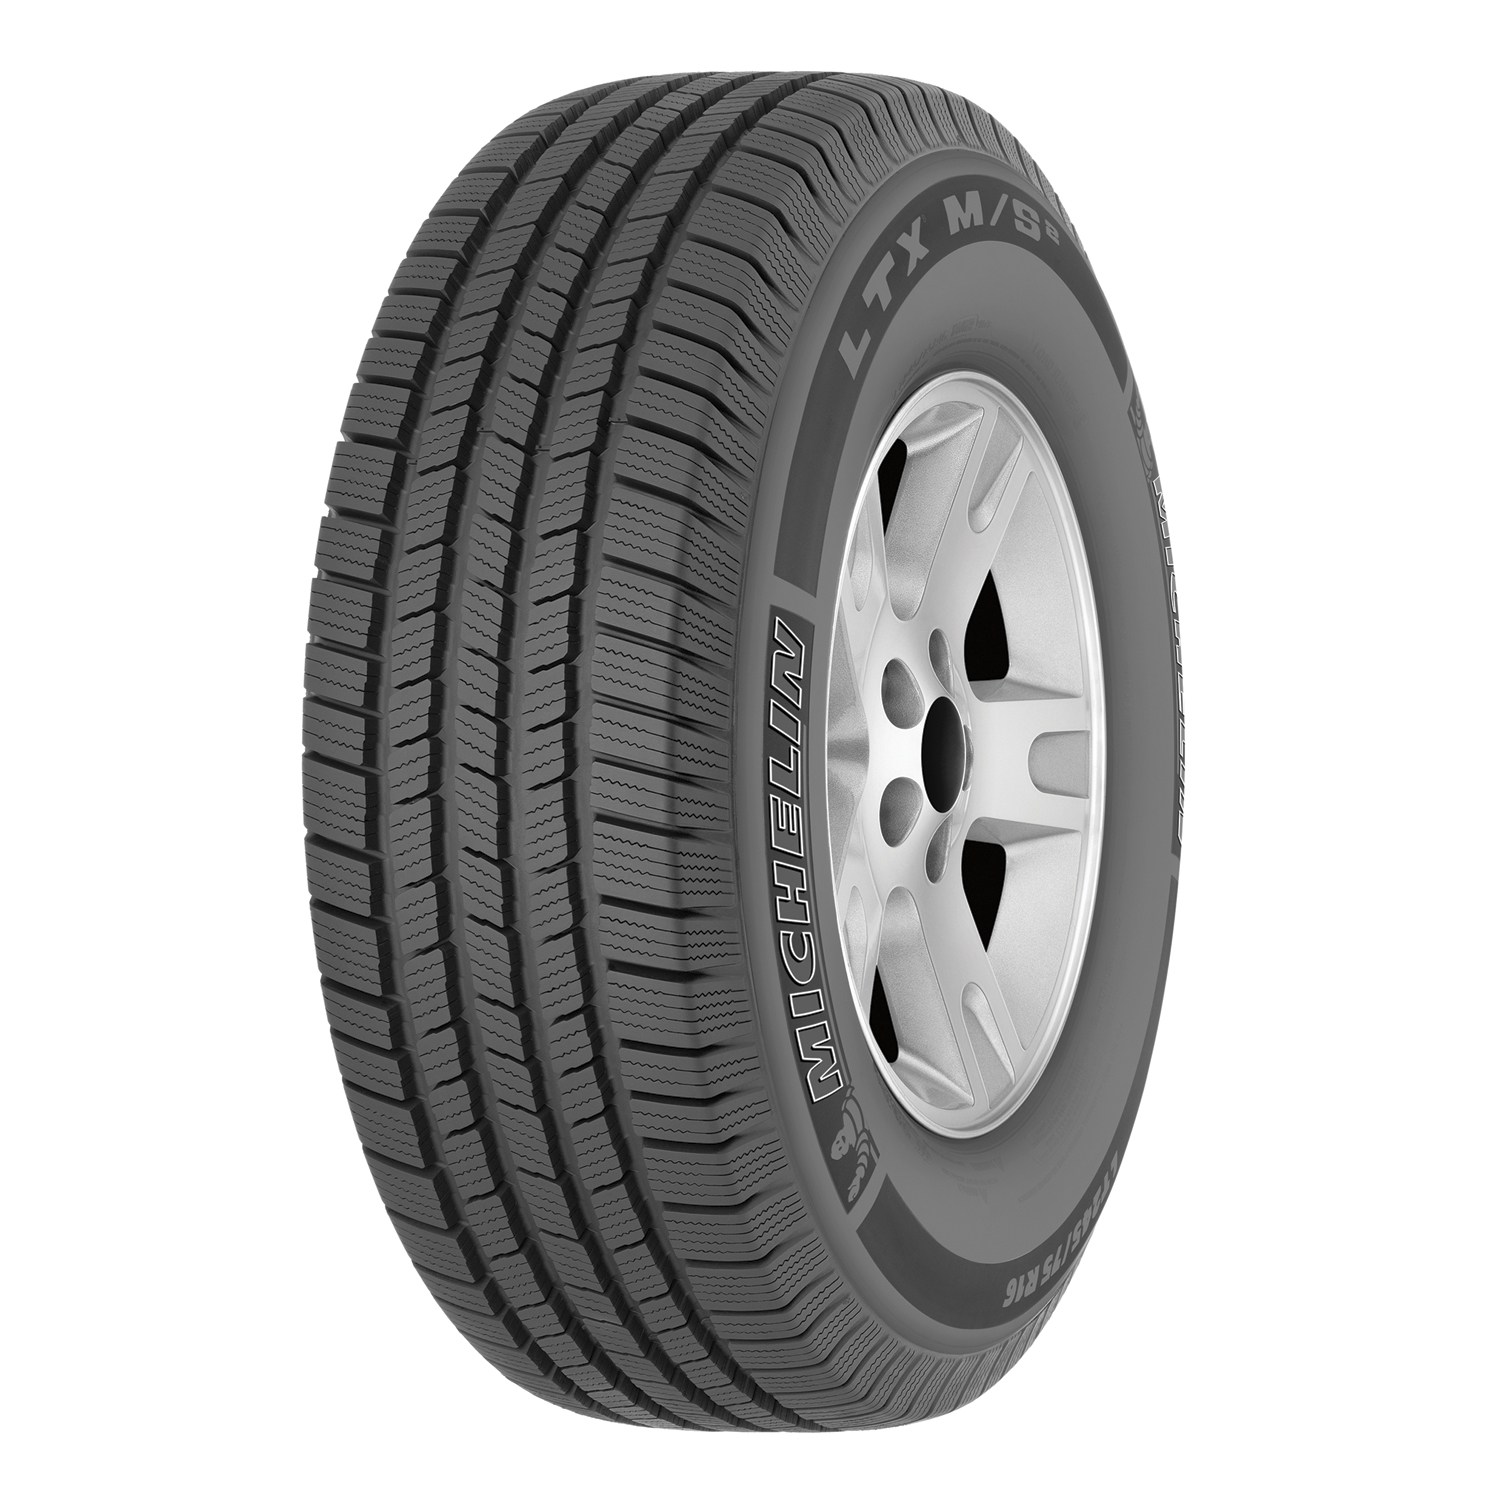 Michelin LTX M/S2 - P265/70R17 113T RWL - All Season Tire 265-70-17